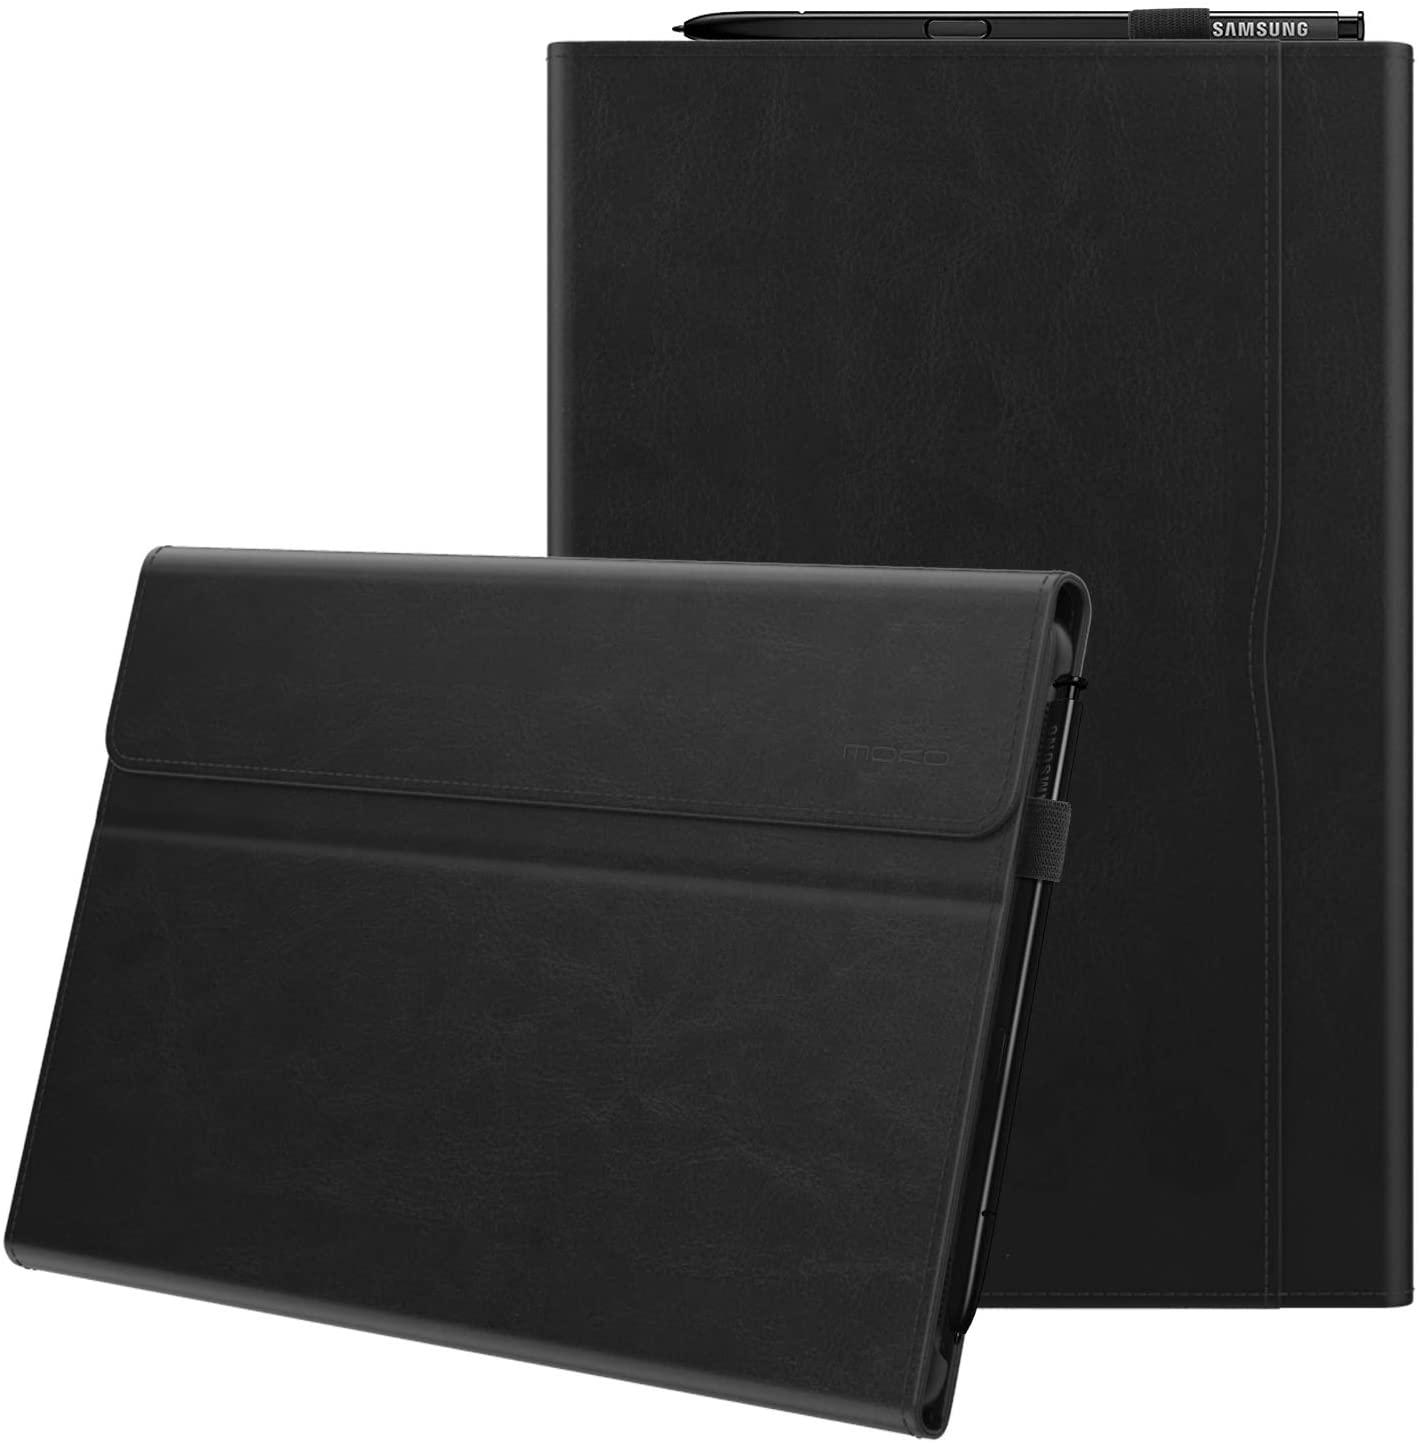 MoKo Case Fit Samsung Galaxy Tab S5e 2019, Ultra Lightweight Portfolio Business Cover with Document Card Slots and Auto Wake & Sleep for Galaxy Tab S5e SM-T720/SM-T725 2019 Tablet - Black